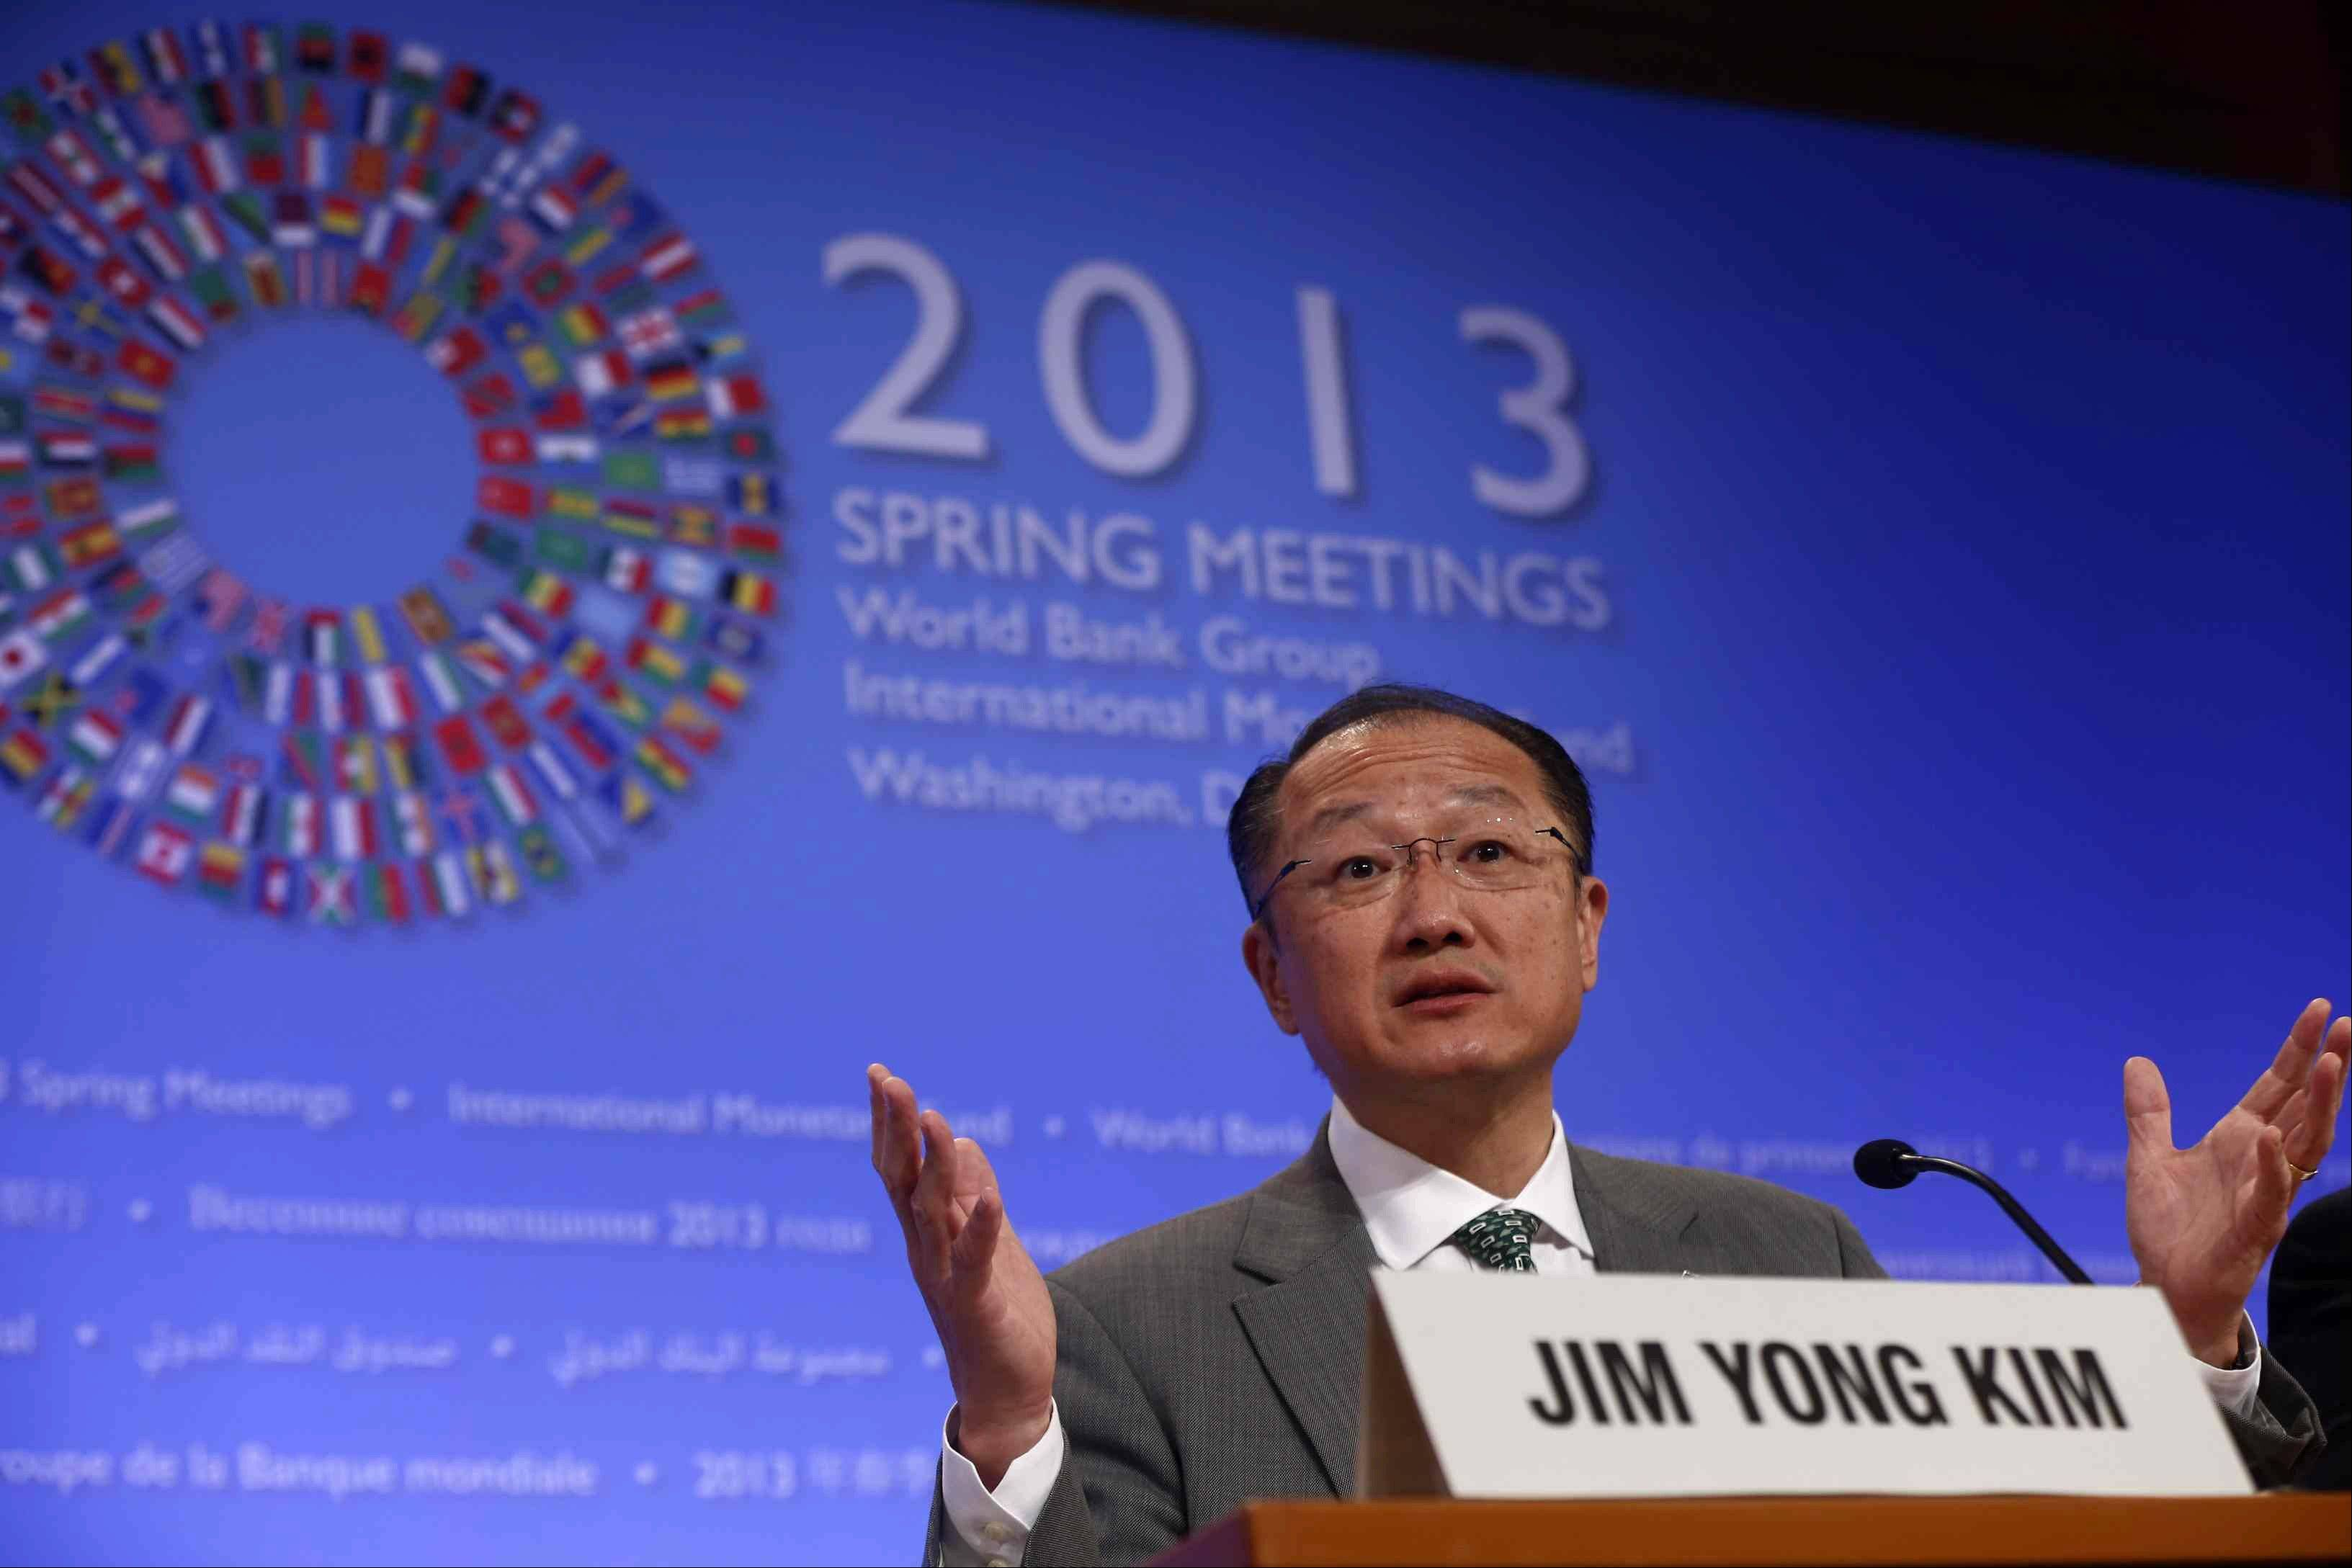 World Bank President Jim Yong Kim speaks at a news conference during the Spring Meetings of the World Bank Group and the International Monetary Fund in Washington, Thursday, April 18, 2013.